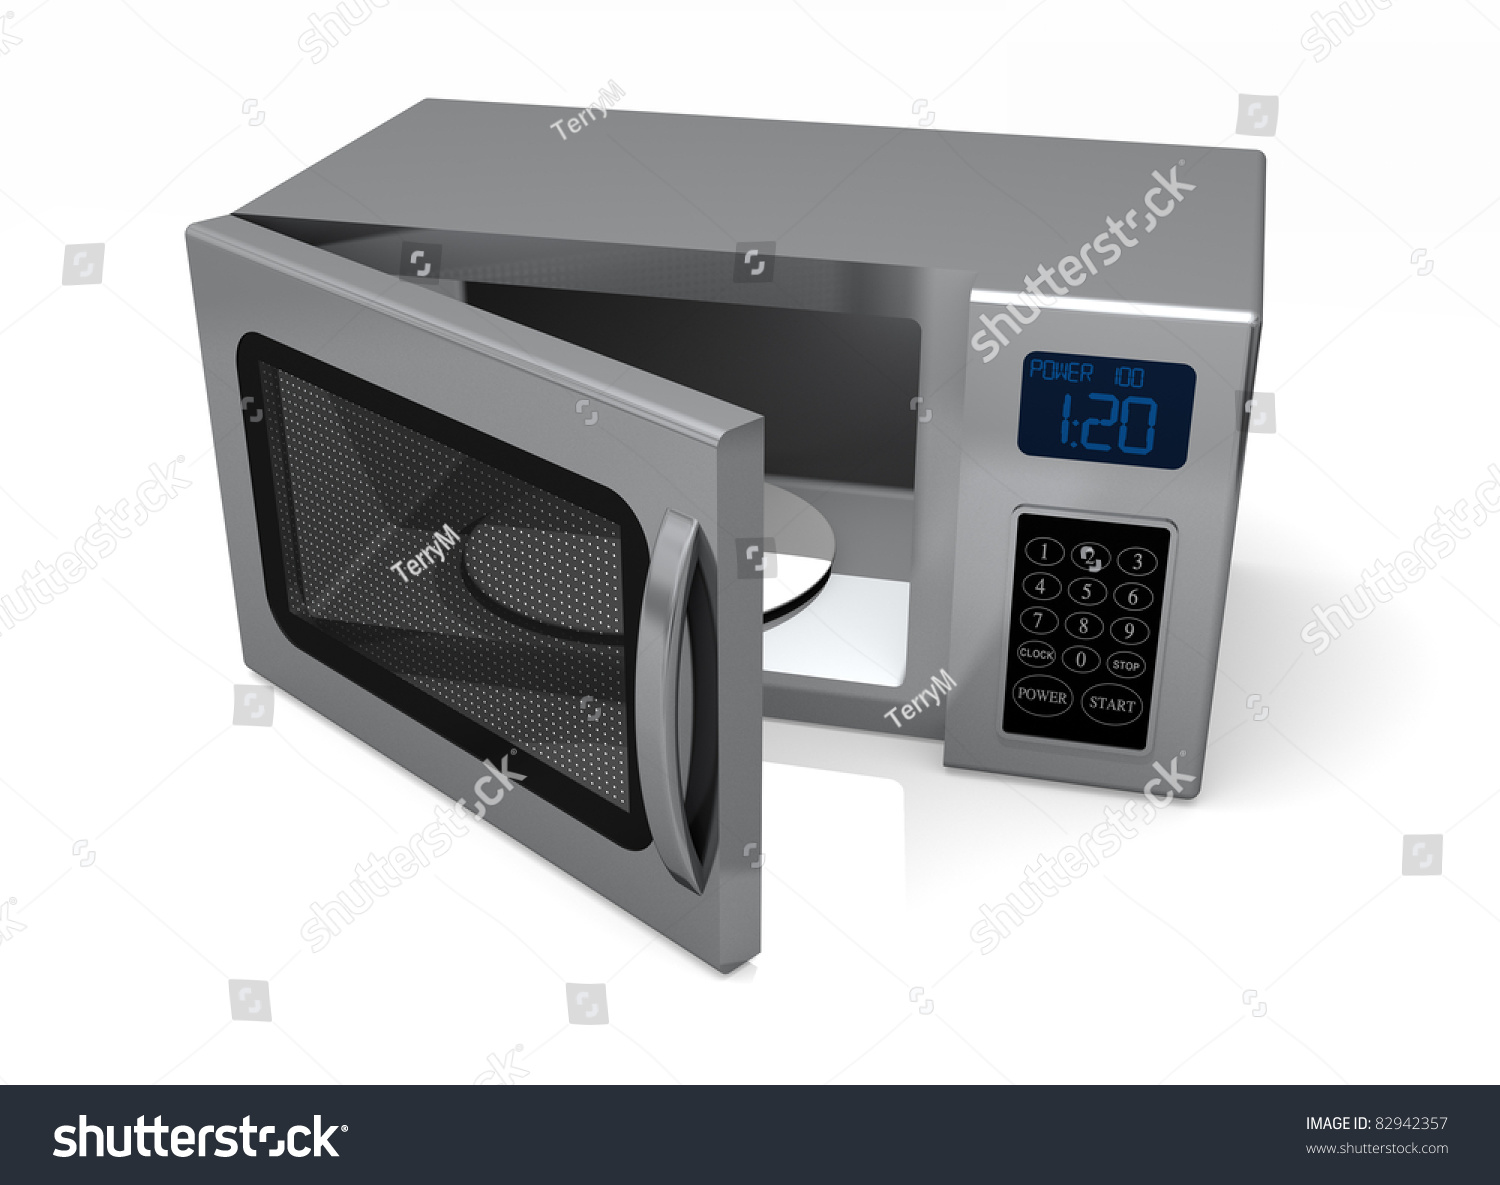 Image Gallery open microwave door